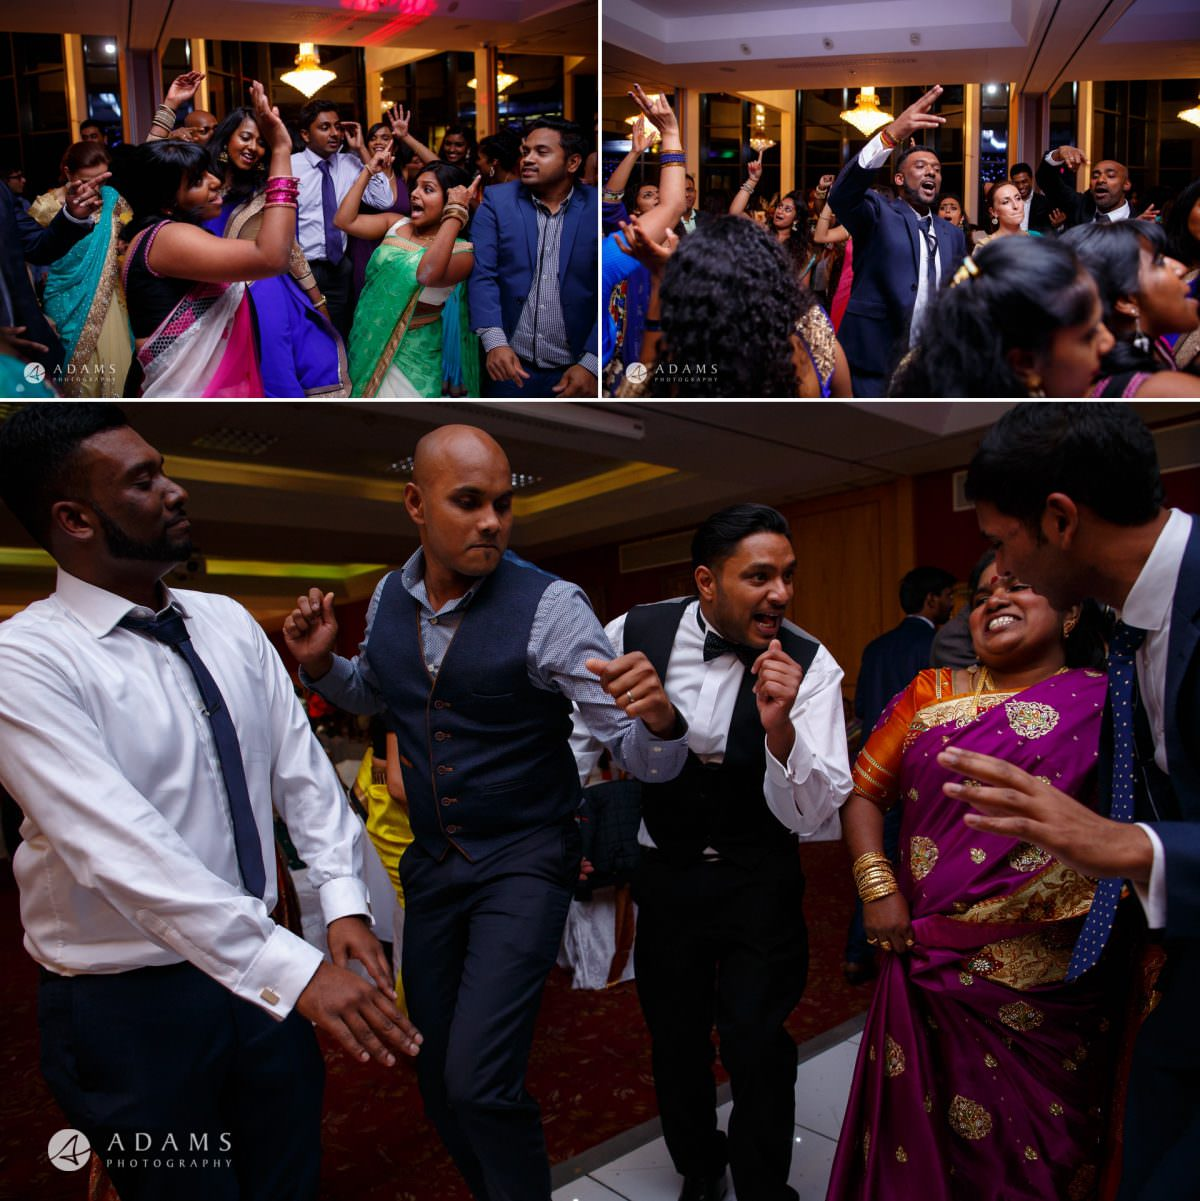 Baylis House Wedding Photographer | Sara + Anojan 32